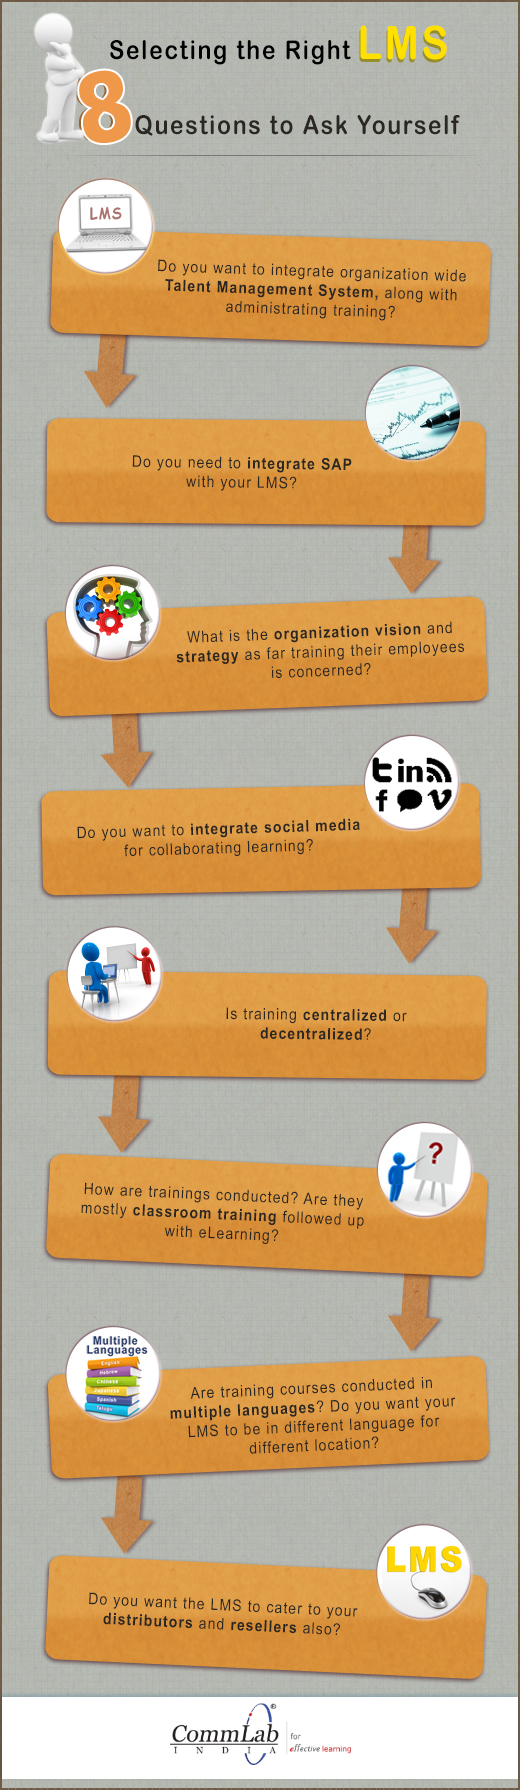 Selecting the Right LMS - 8 Questions to Ask Yourself - An Infographic